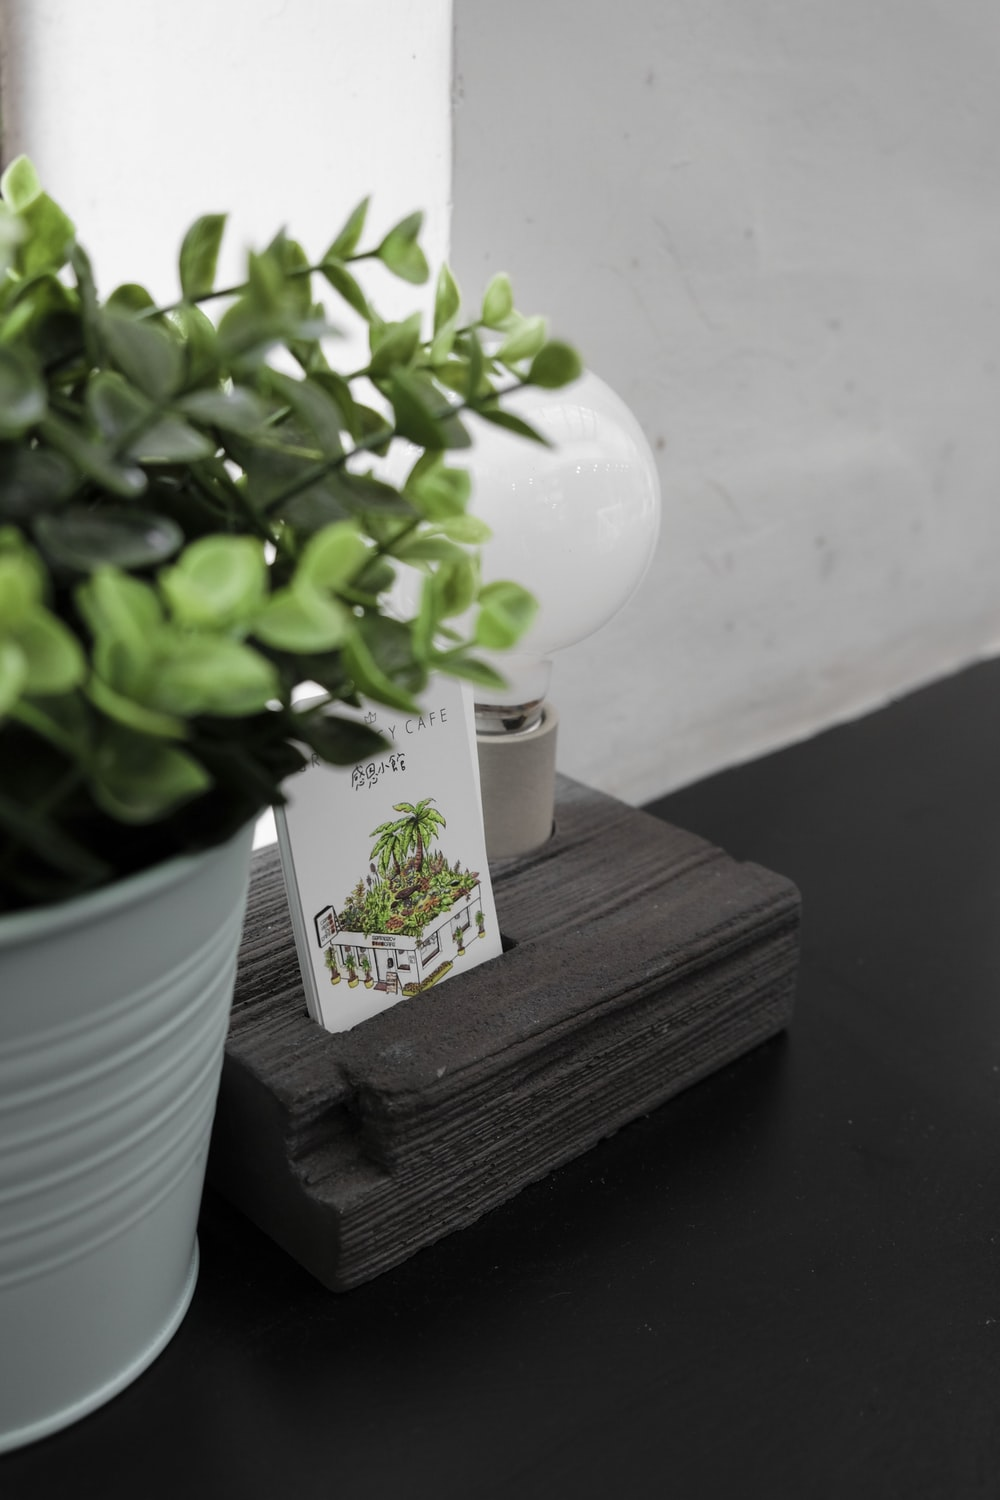 book near green leafed plant and white lightbulb